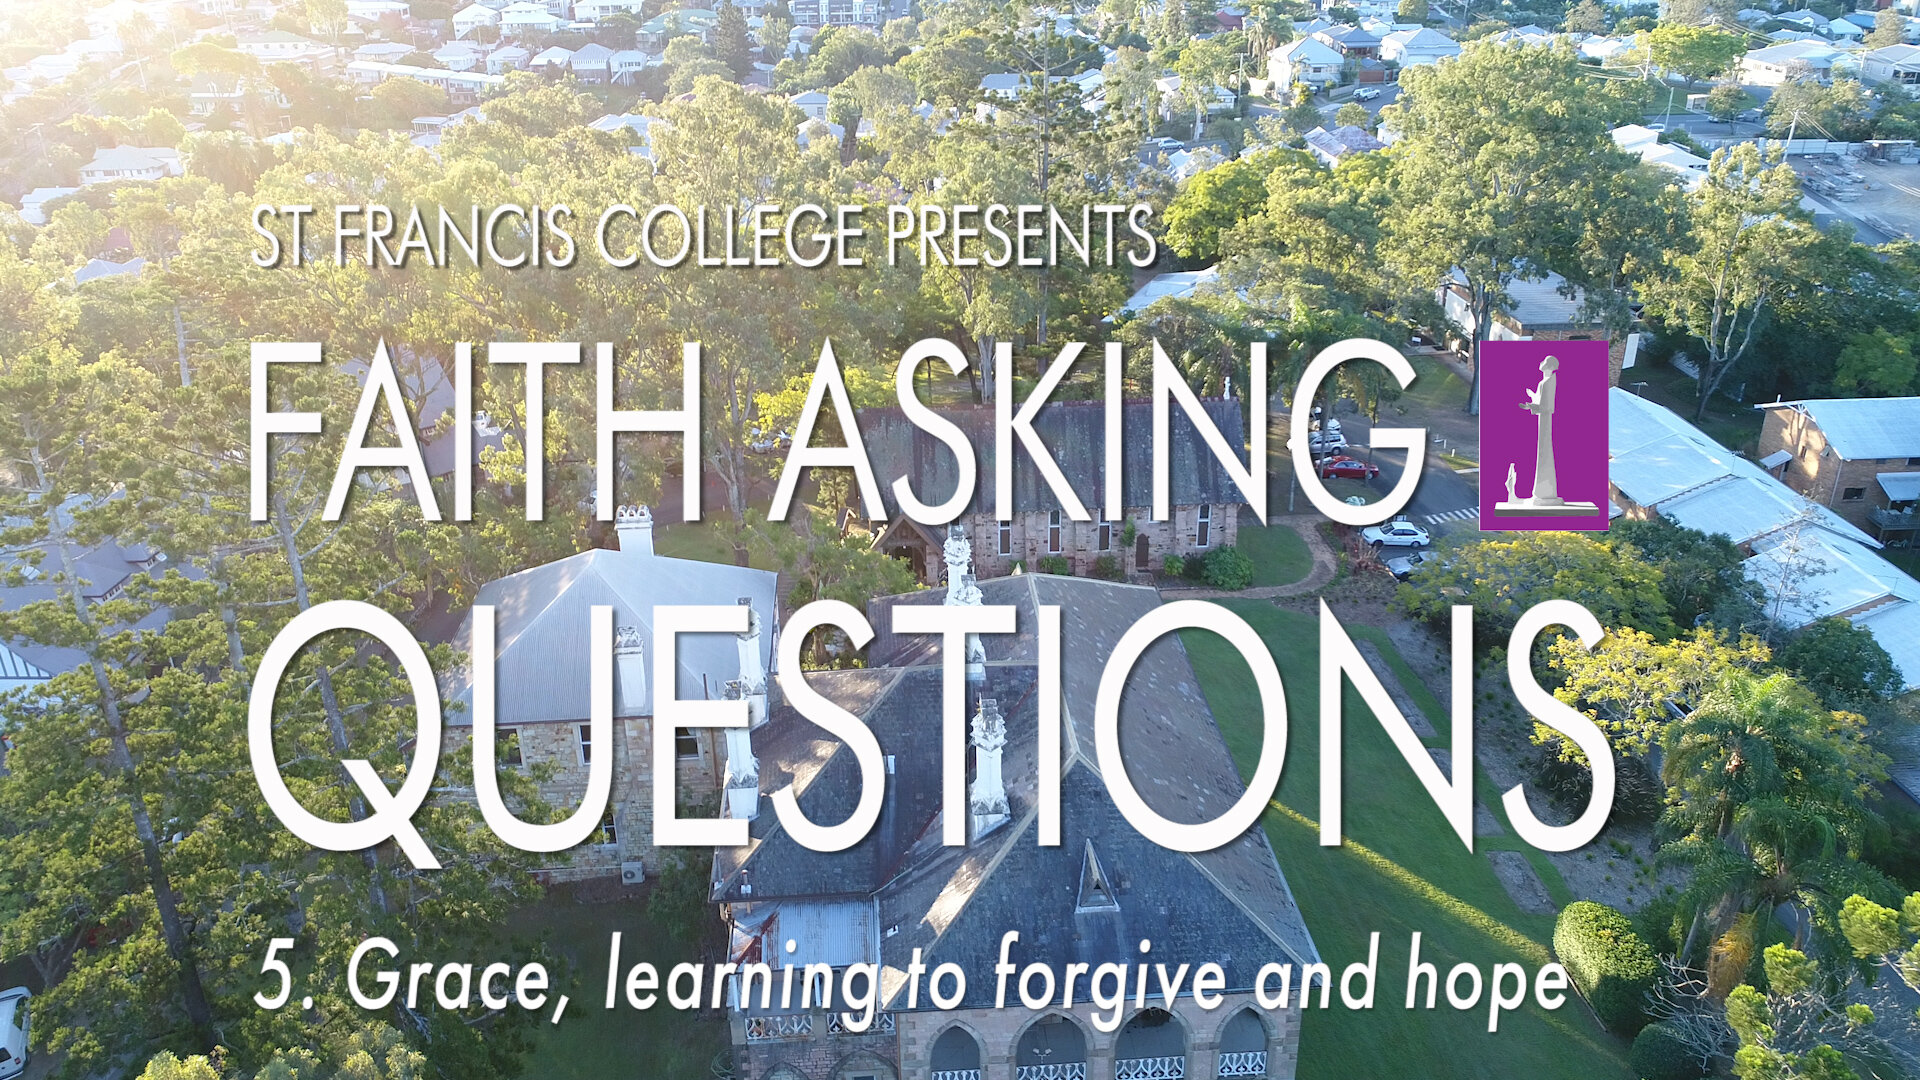 5. Grace and learning to forgive and hope